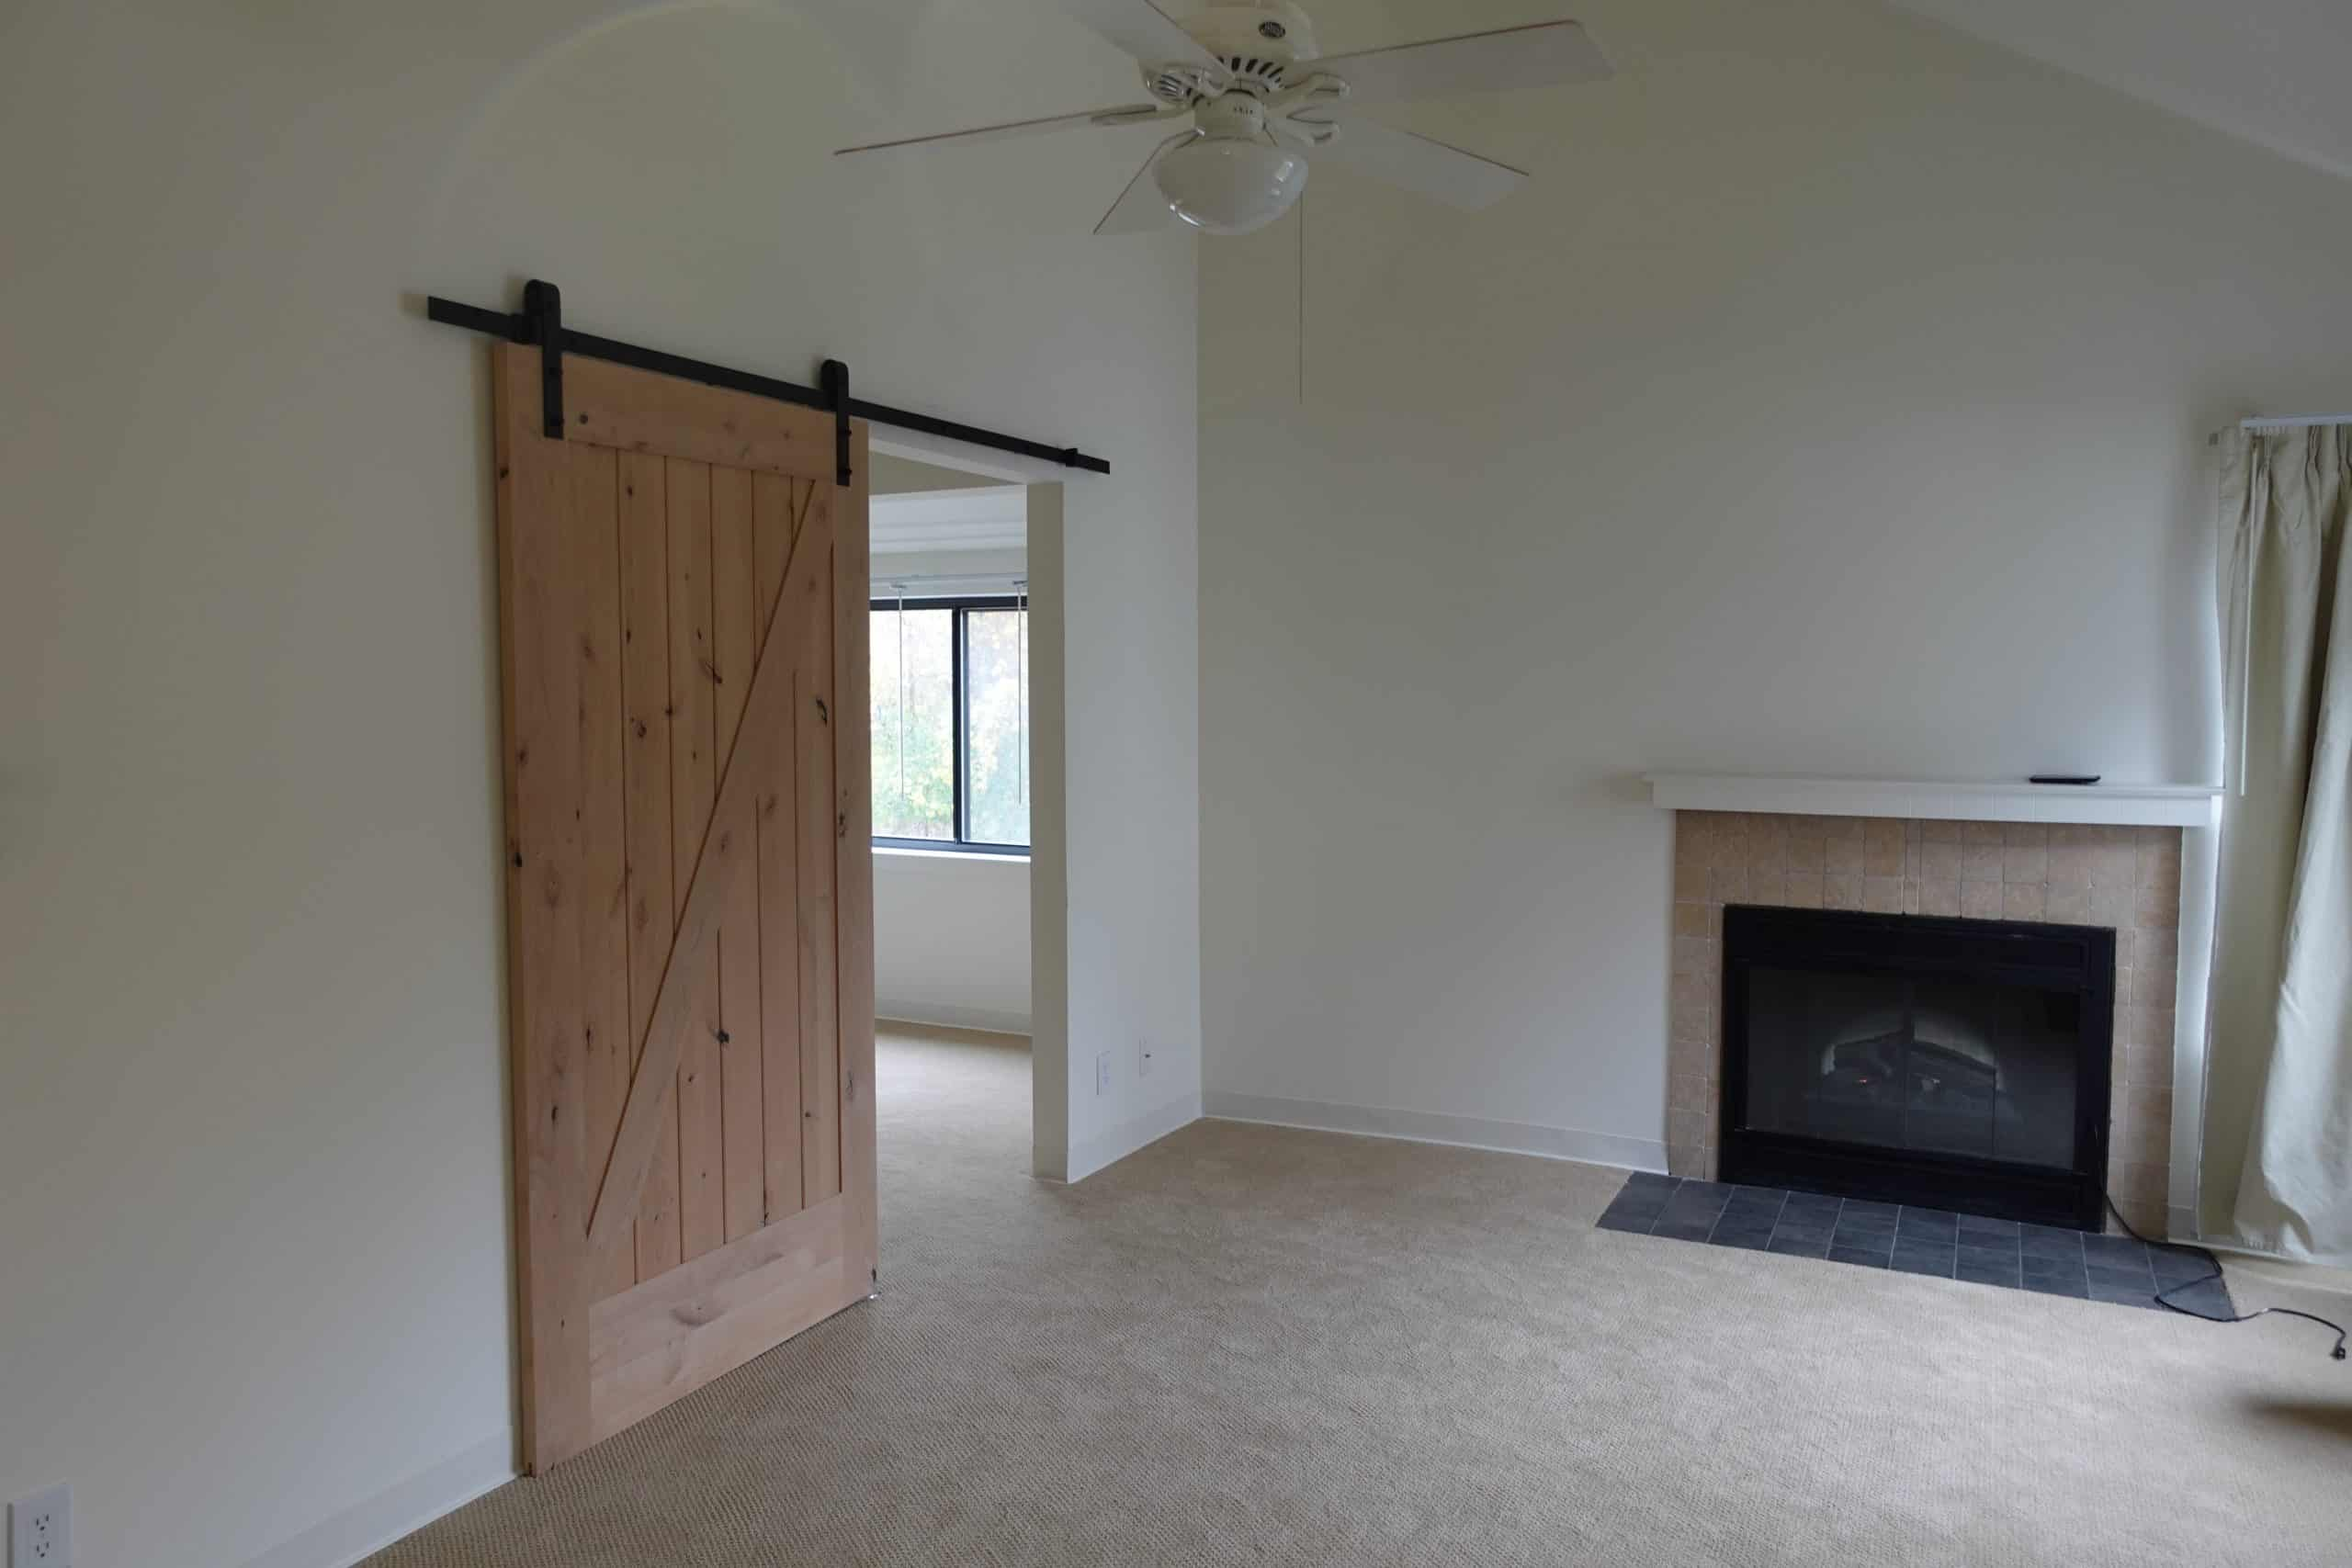 fire place and sliding barn door